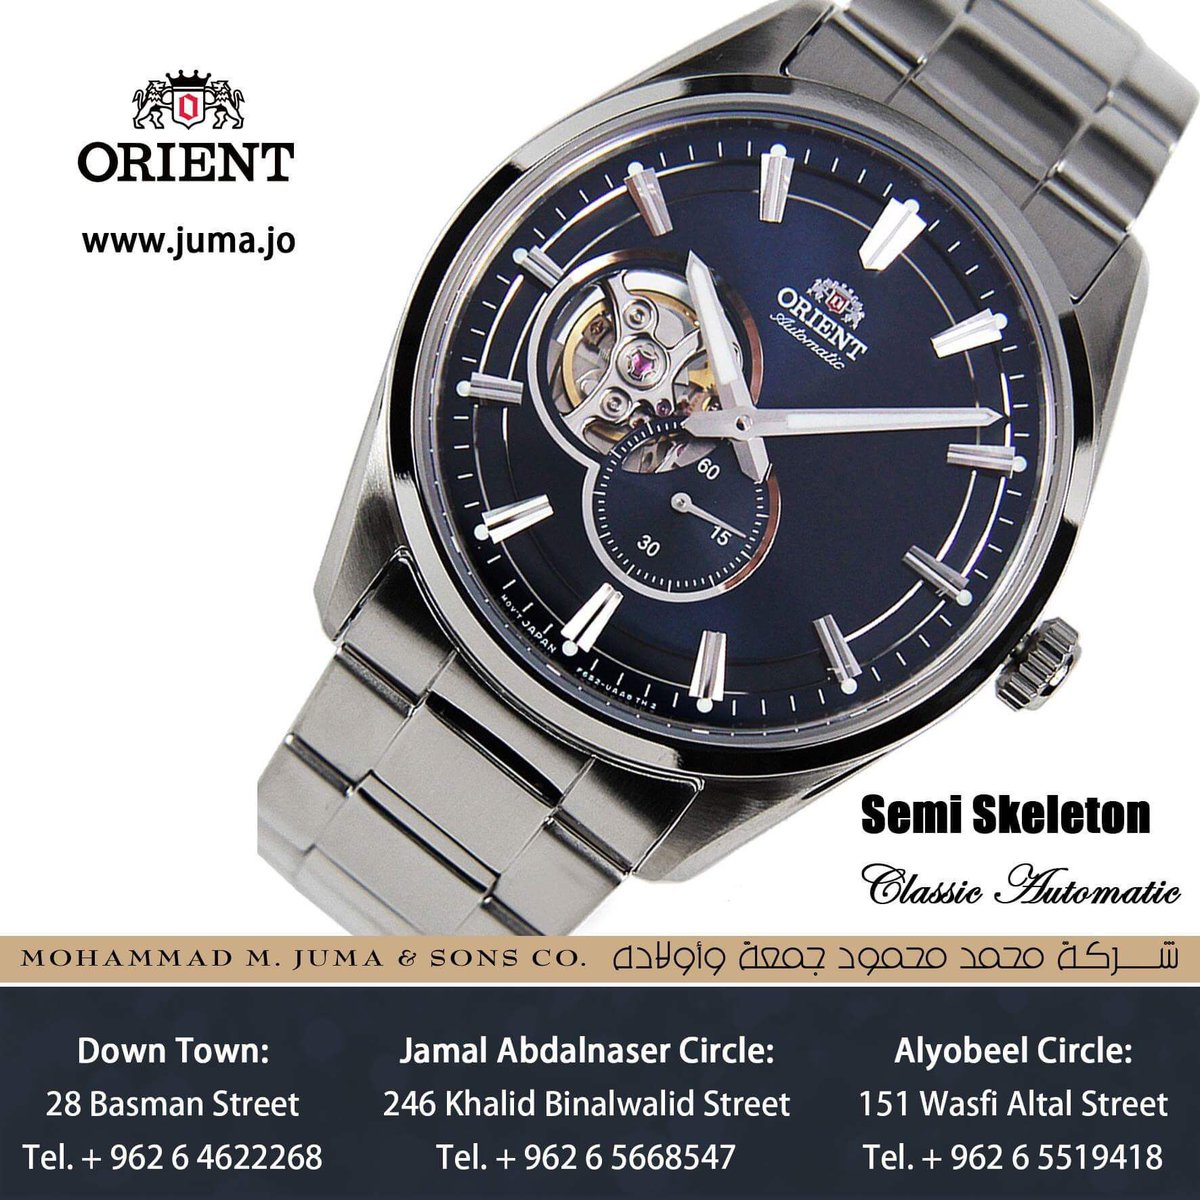 f10b4e1e0 Here is a new Automatic Semi Skeleton watch from Orient #orientwatch  #orientwatches #wristwatch #semiskeleton #CLASSIC #AUTOMATIC #luxury  #fashion #watch ...